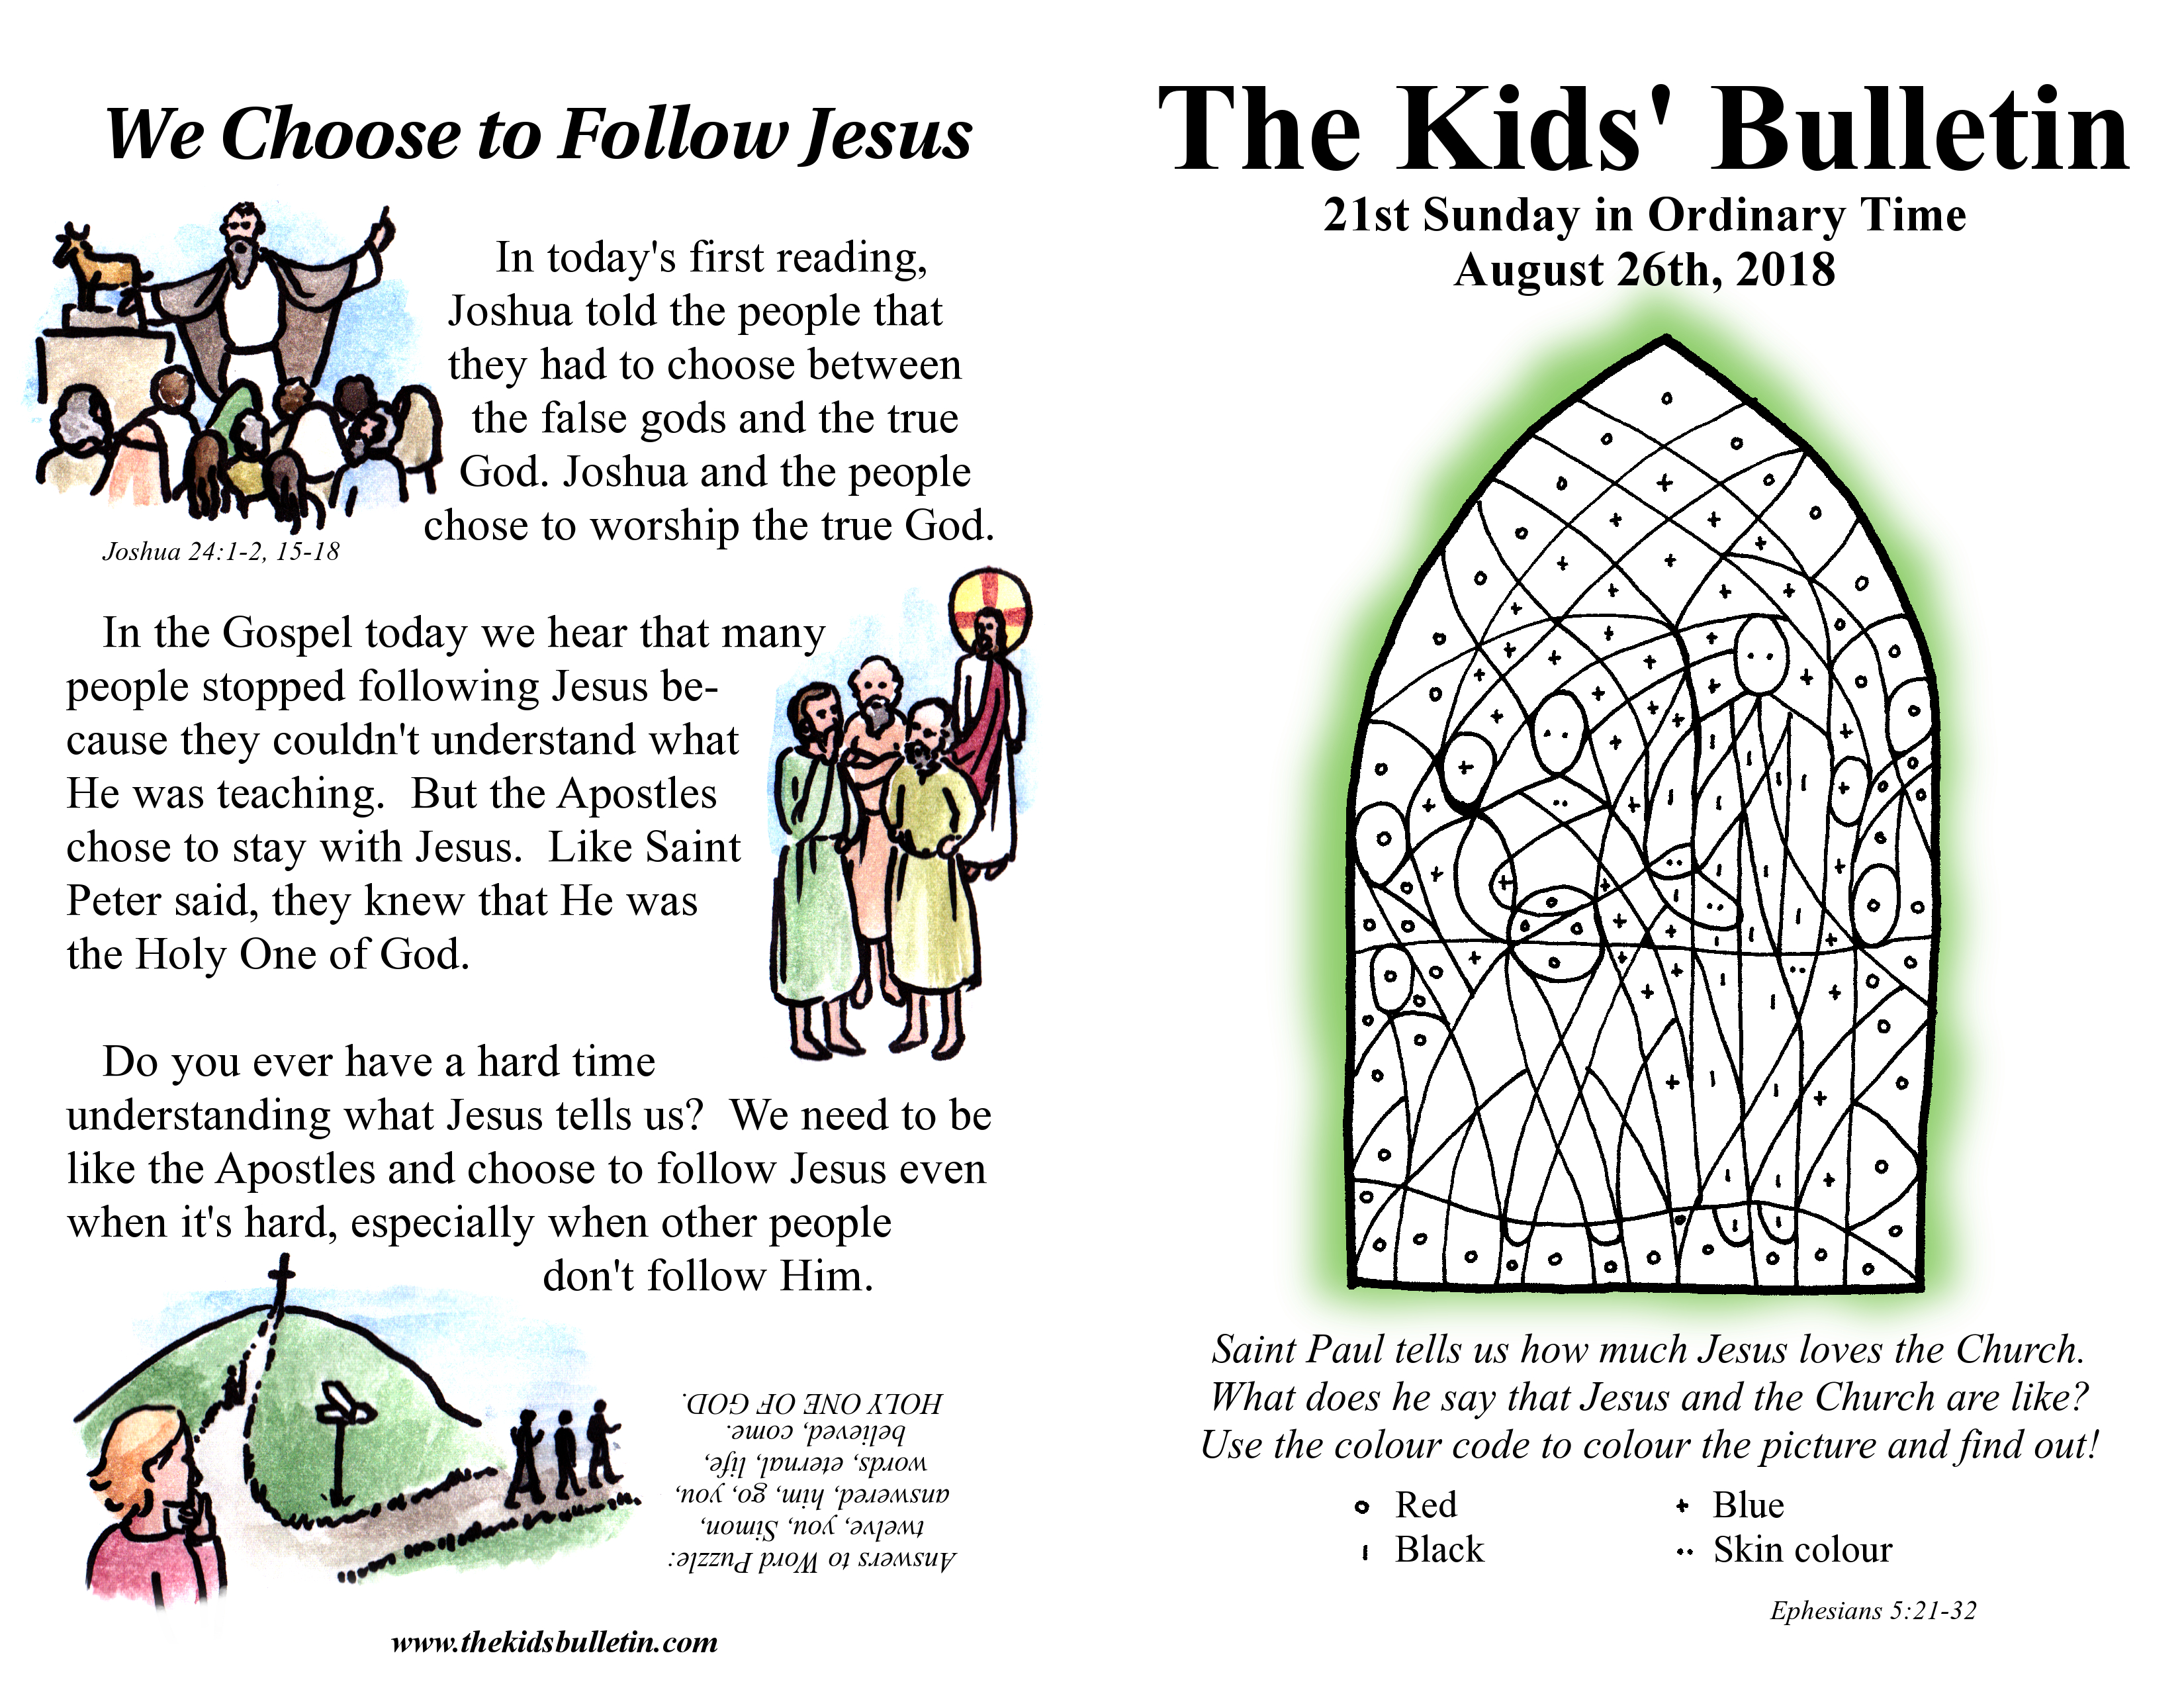 The Kids Bulletin For Sunday August 26th